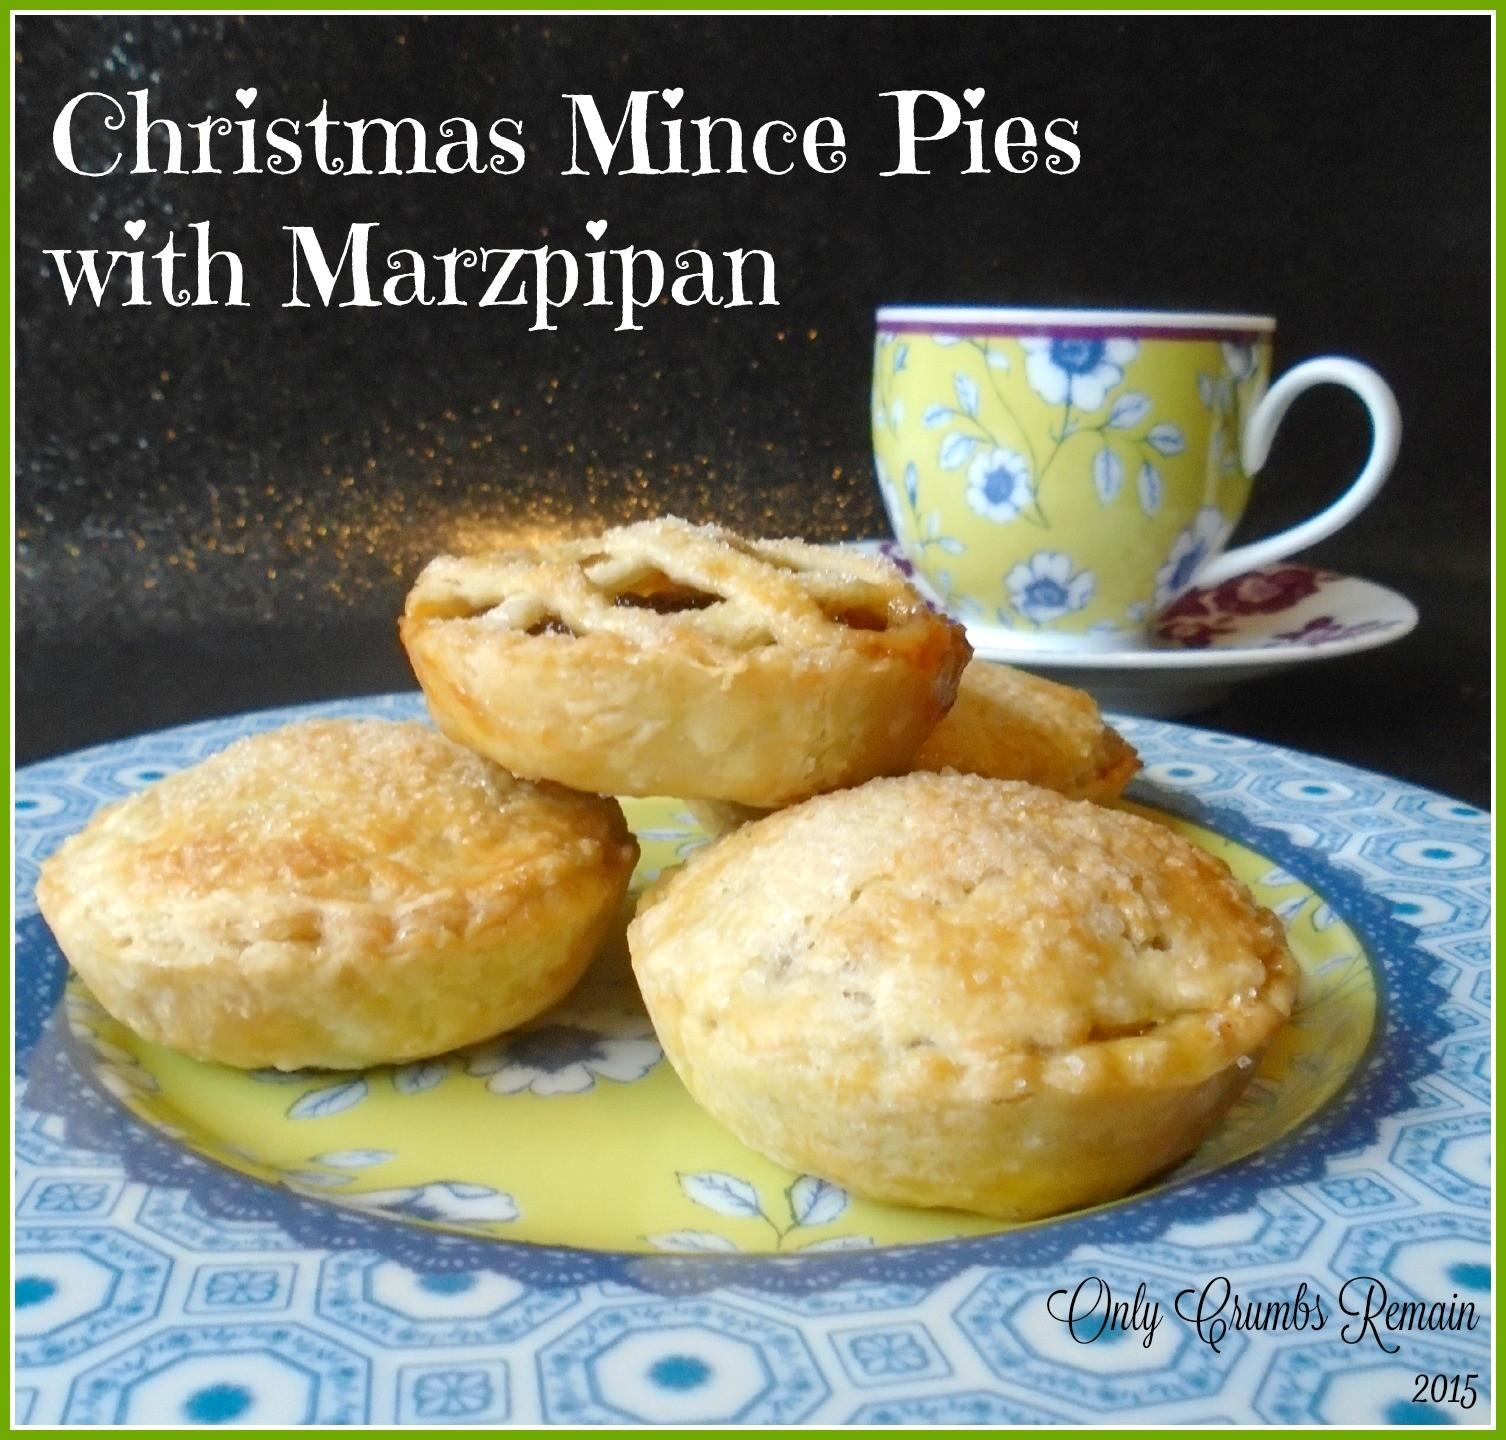 Only Crumbs Remain Christmas Mince Pies Marzipan